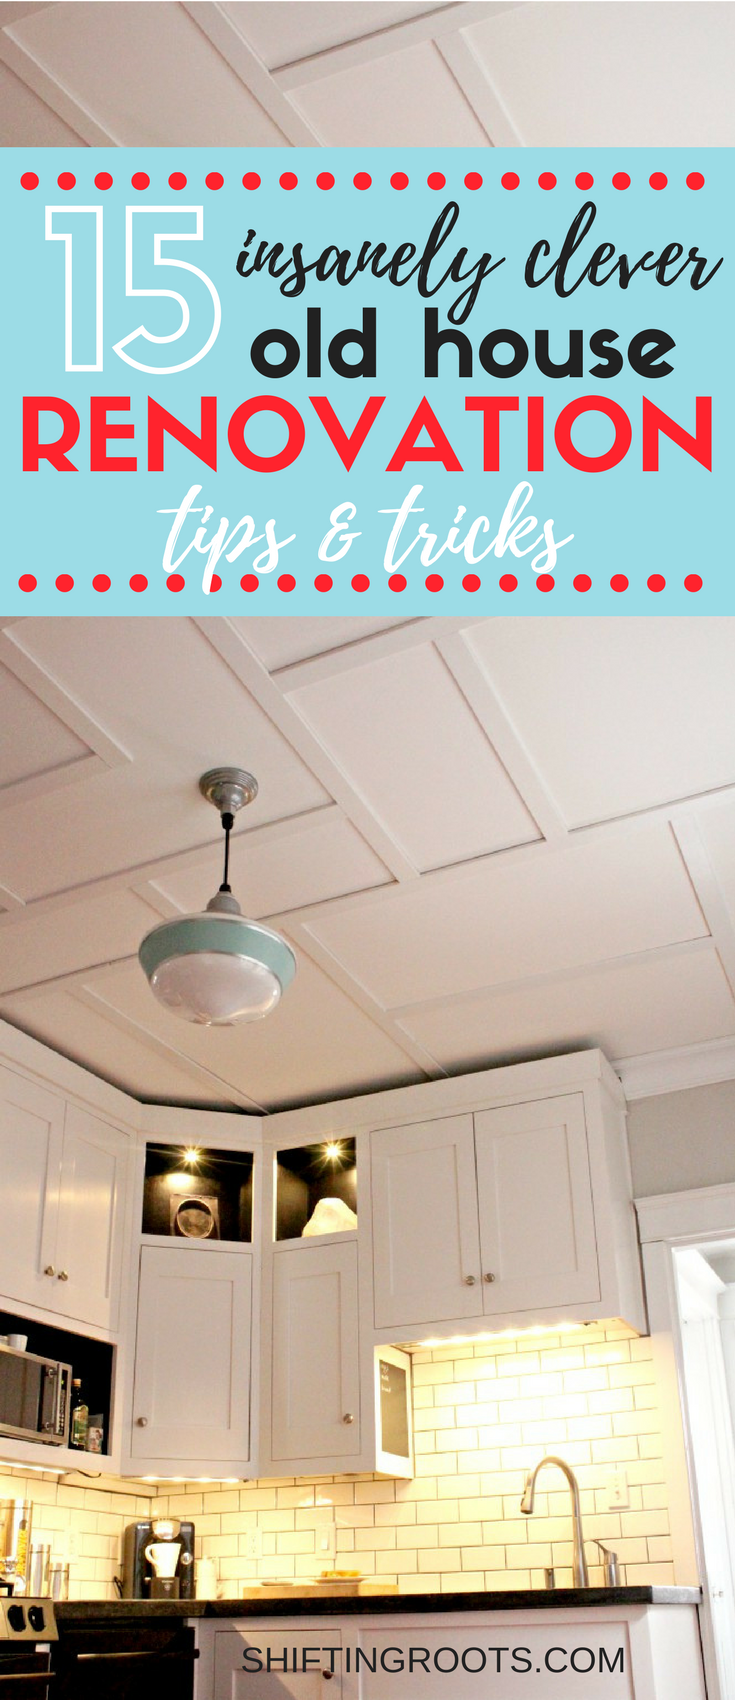 Renovating an old house can get frustrating really quick.  Learn about 15 remodelling tips and tricks that can make the interior of your character home work for you.  Lots of ideas and clever renovation solutions. #oldhouse #characterhome #renovation #remodelling #renovationhacks #tipsandtricks #houserestoration #designsolutions #homedesign